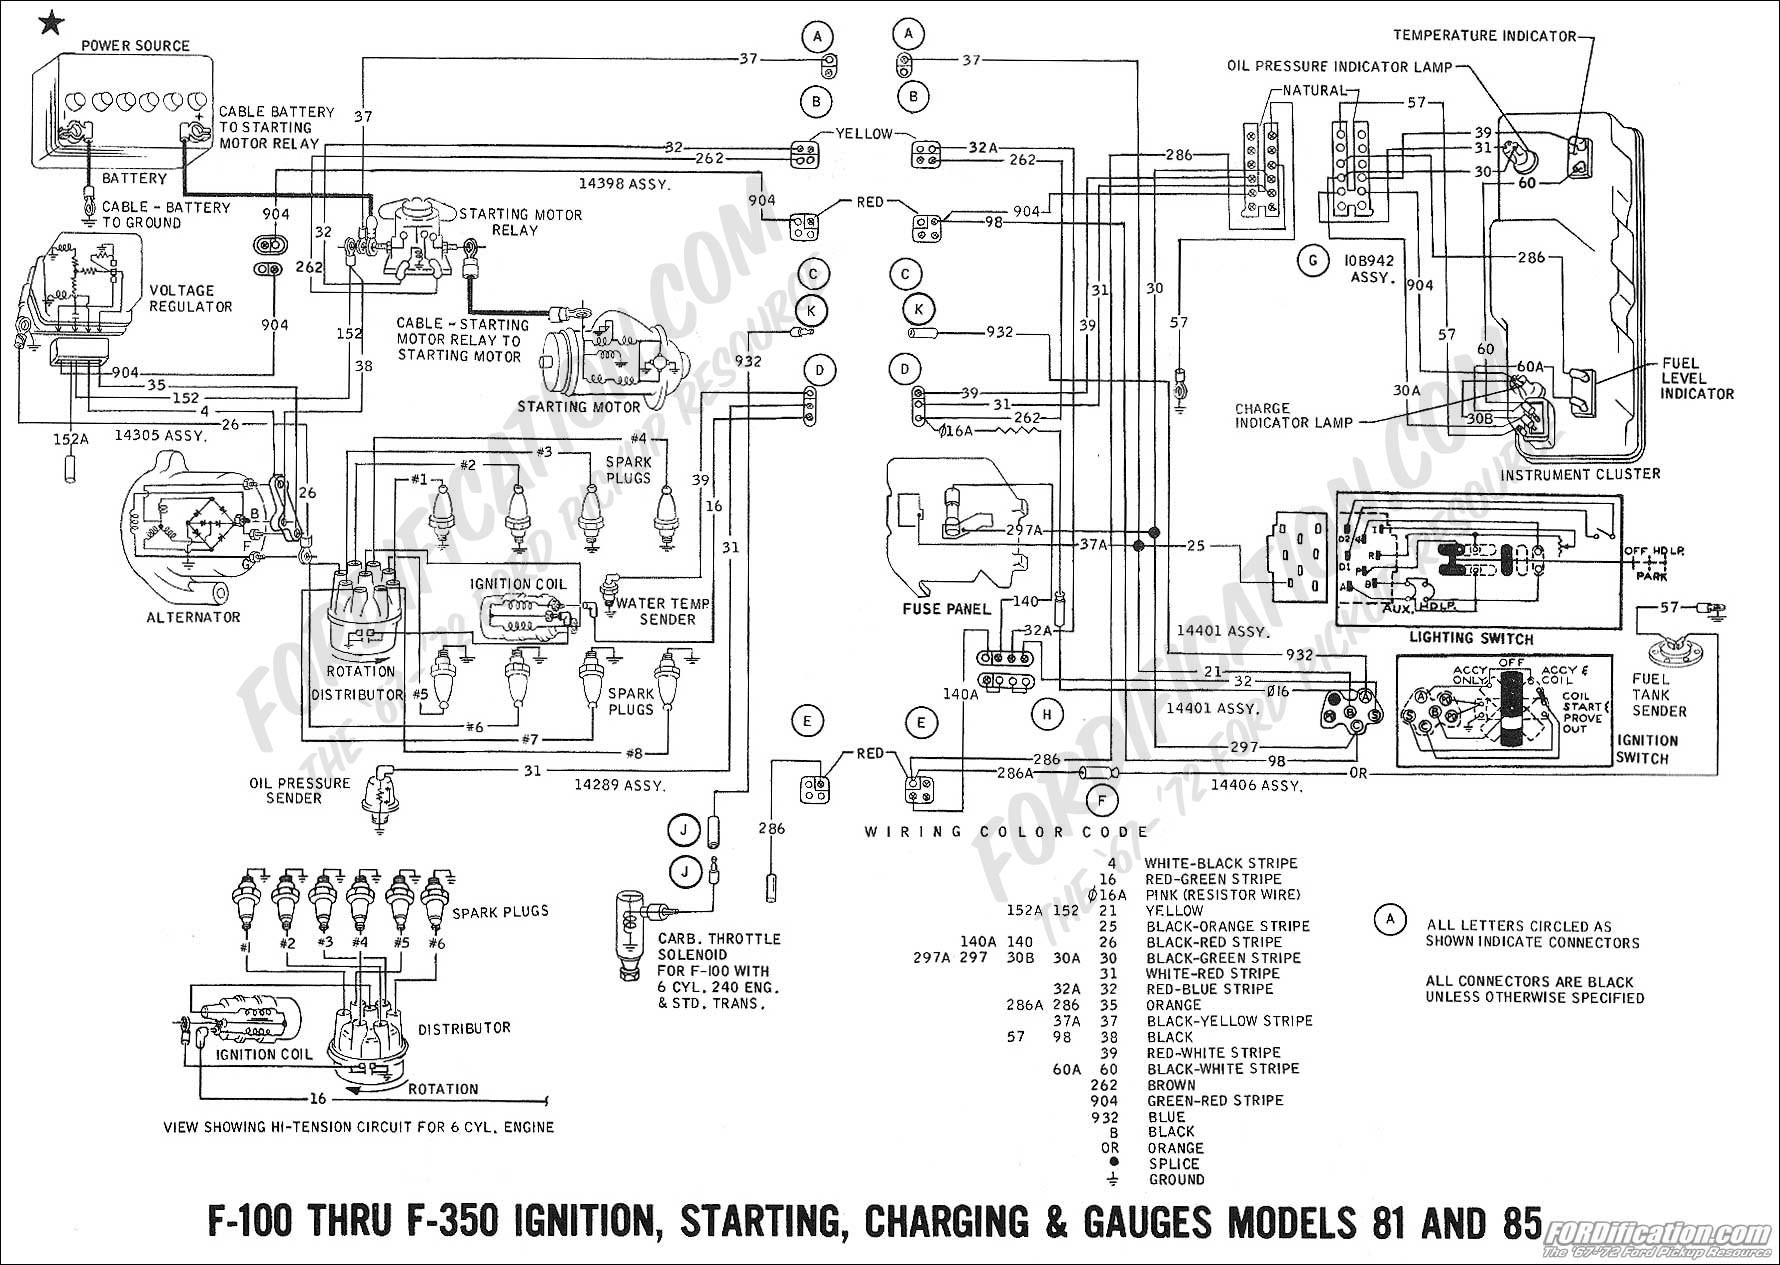 suzuki maverick wiring diagram fav wiring diagram 1975 Buick Skyhawk Wiring Diagram